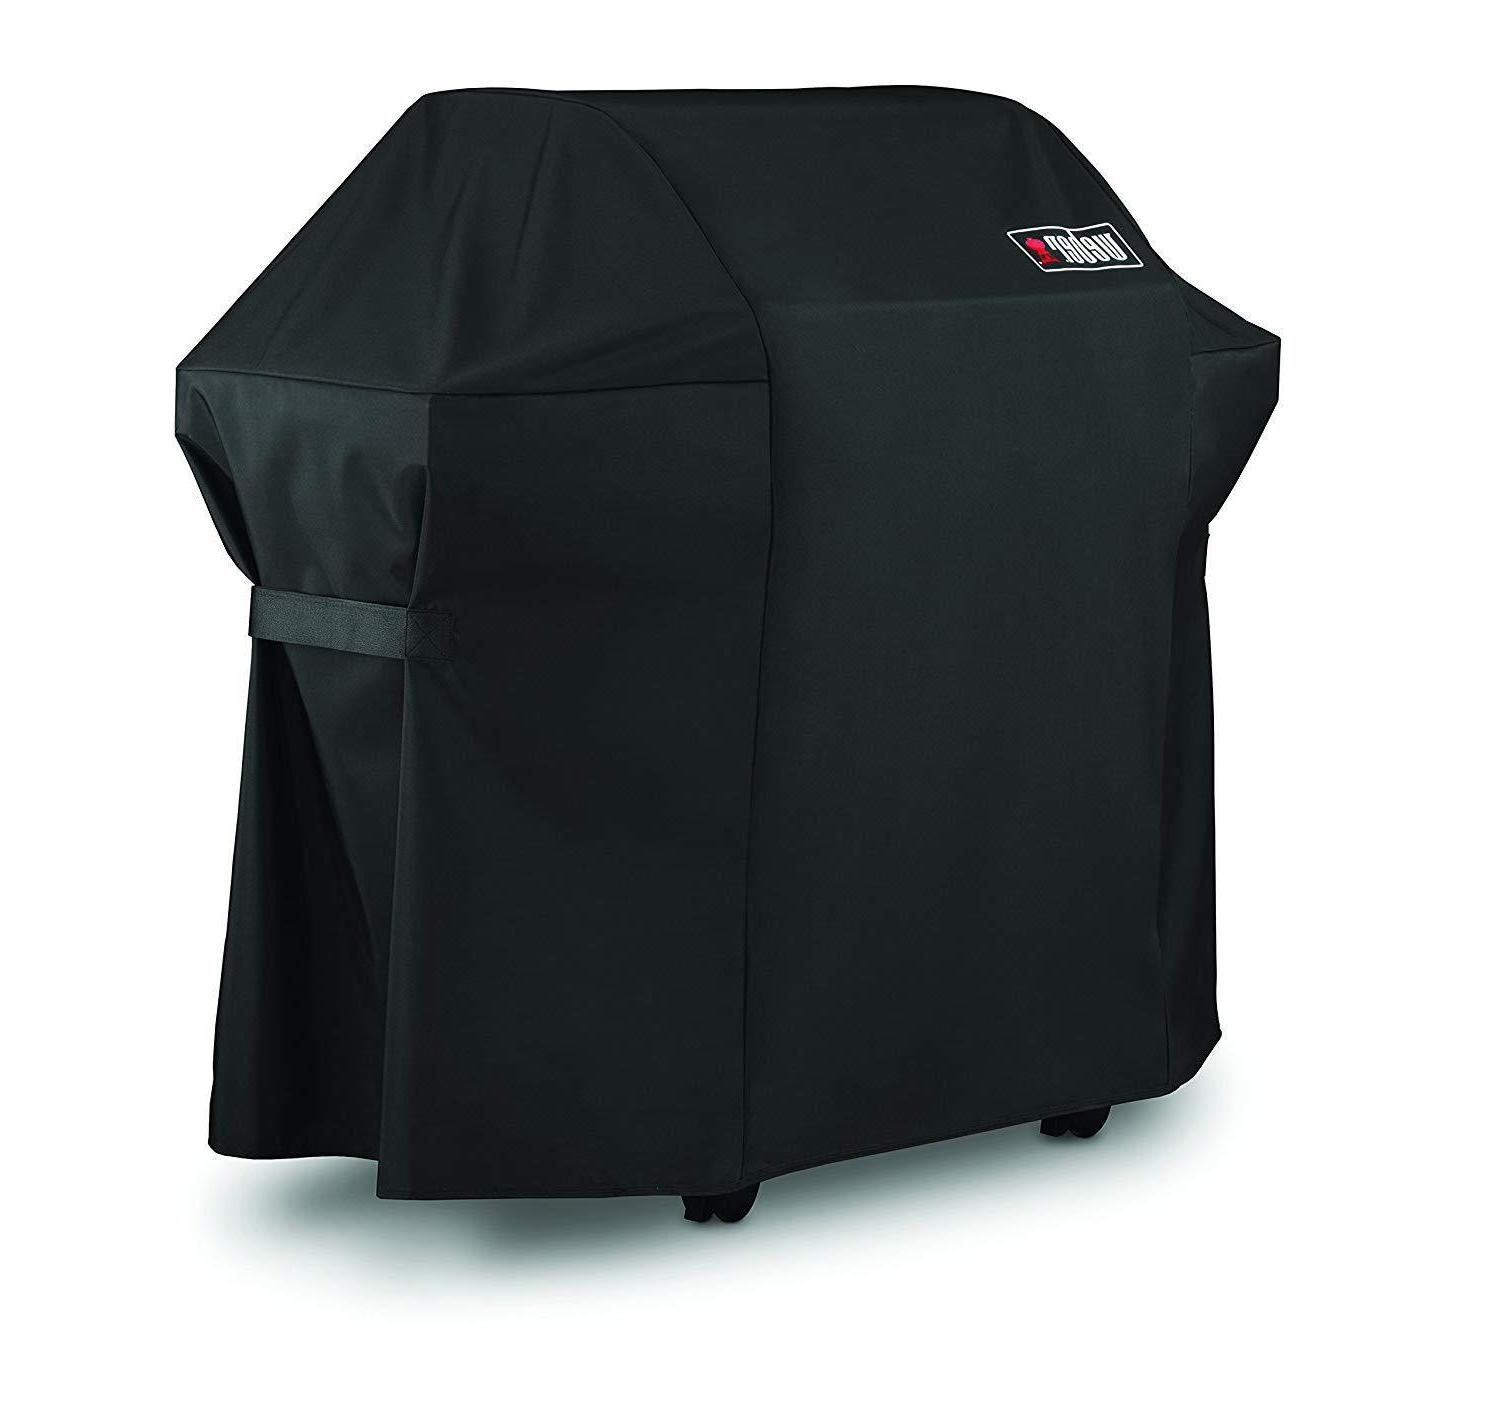 7106 grill cover black storage bag